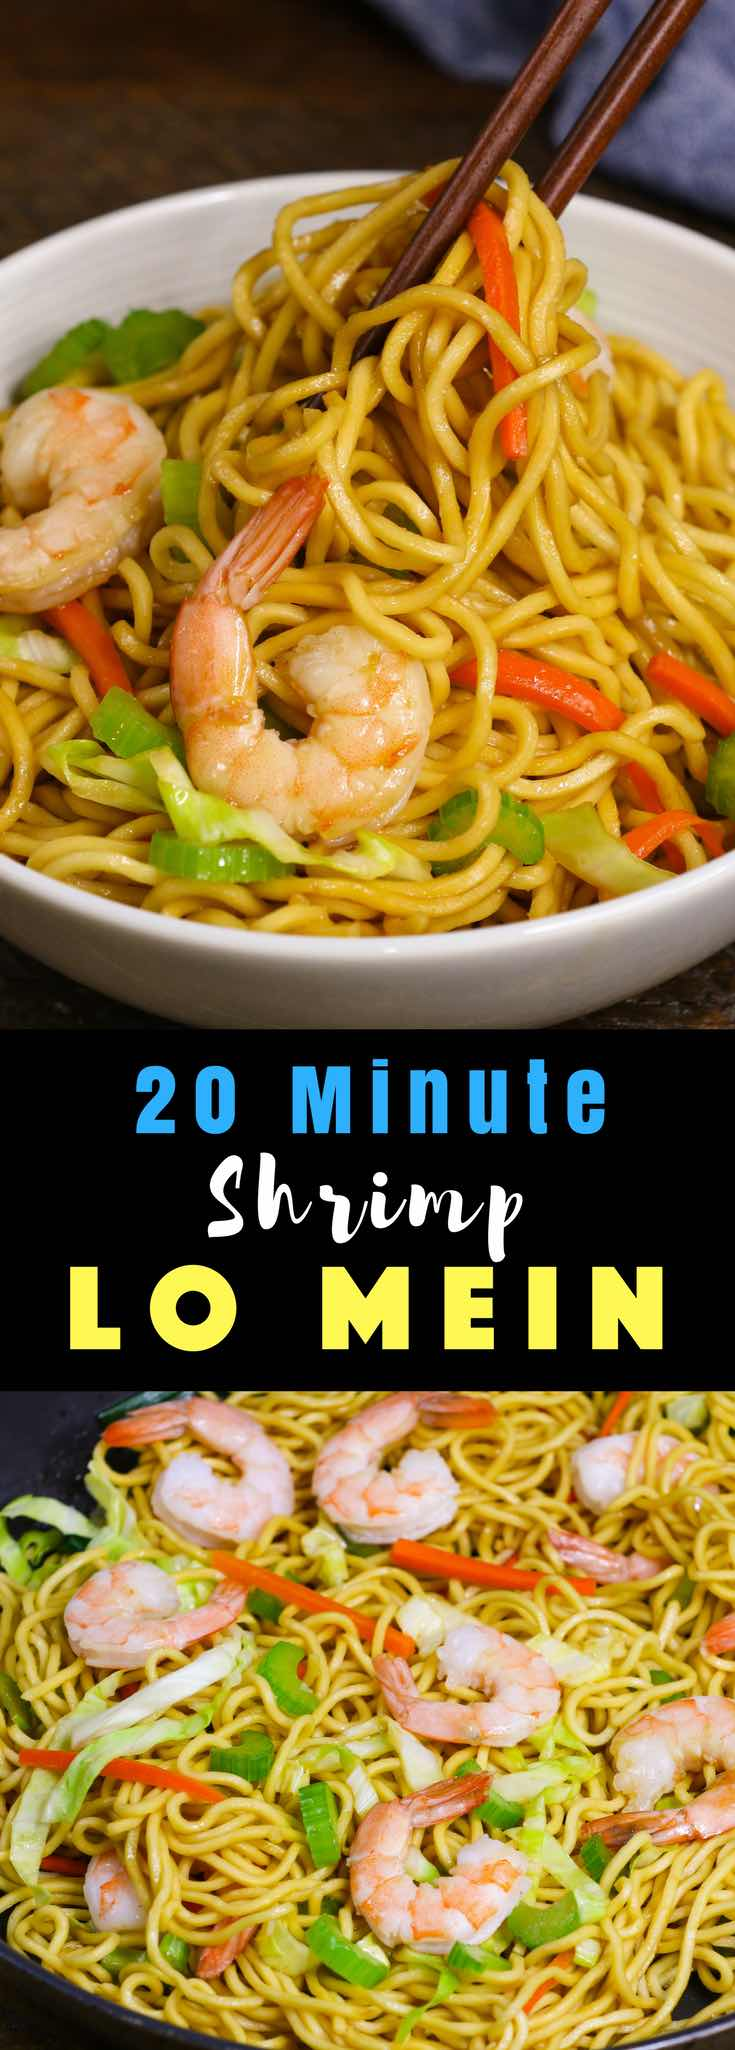 This Garlic Shrimp Lo Mein is loaded with succulent shrimp, fresh vegetables and lo mein noodles. It comes together in about 20 minutes and is so much better than takeout. Simple, fast and delicious!